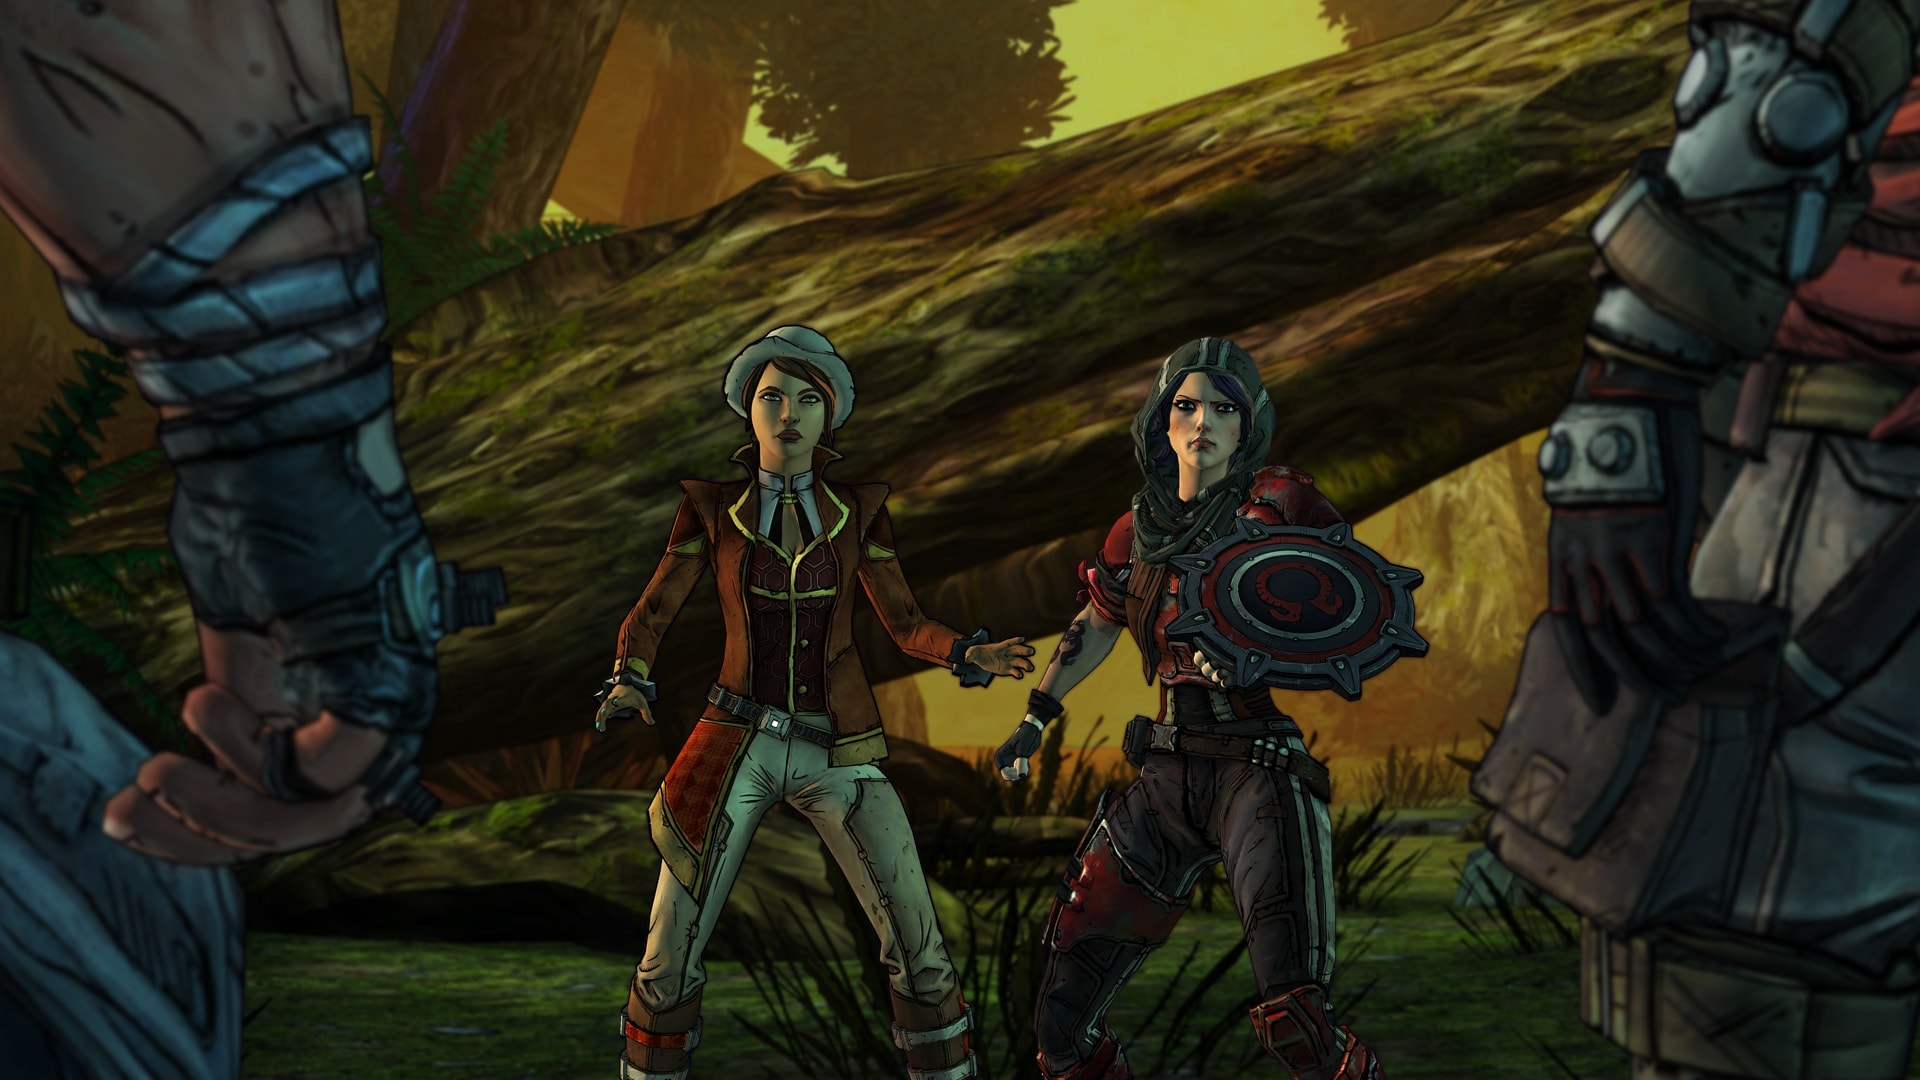 Tales from the Borderlands: Episode 5 - The Vault of the Traveler Download